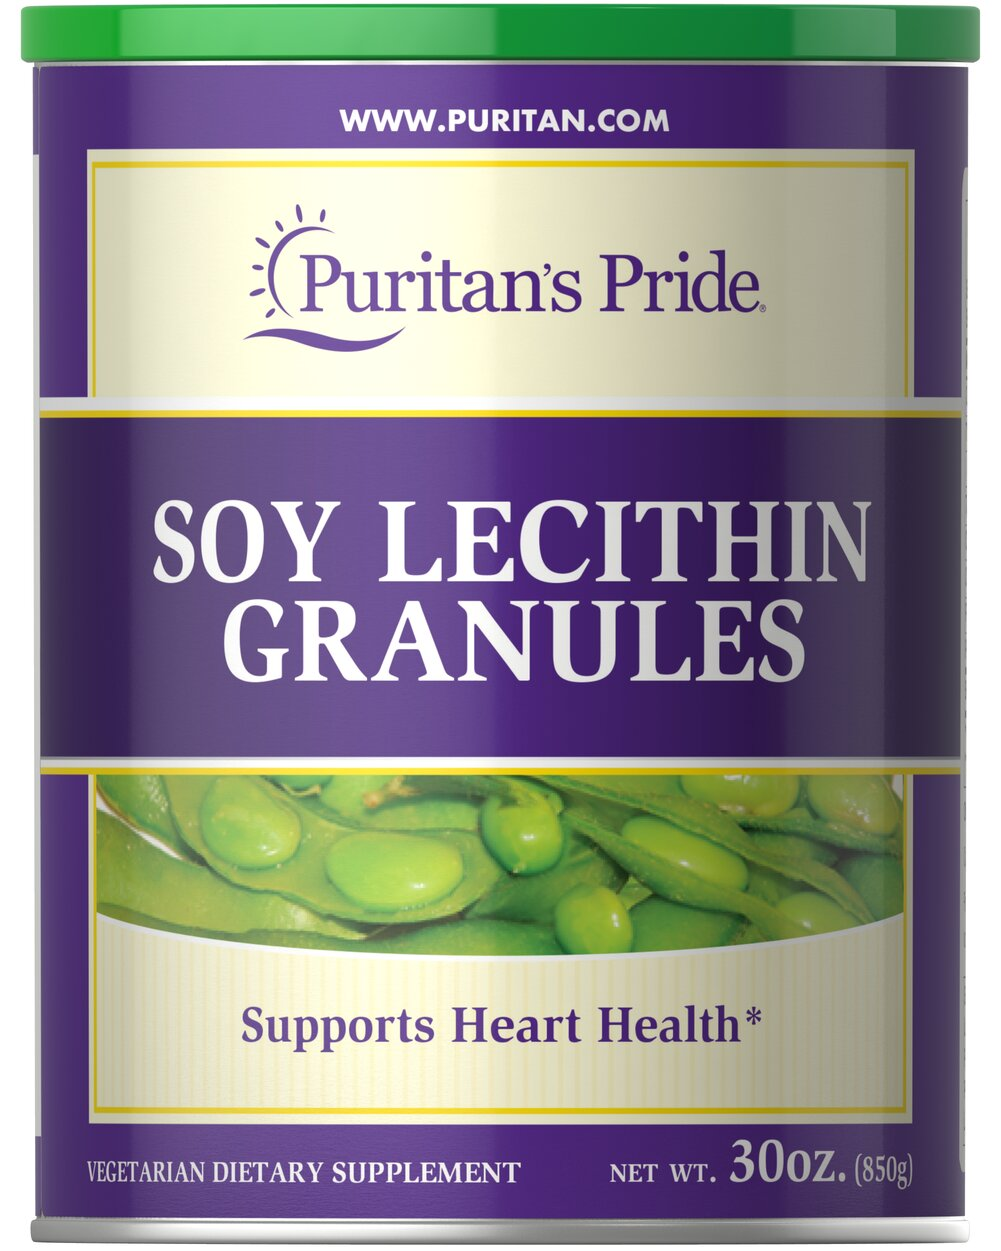 Soy Lecithin Granules 1680 mg <p>95% SOY PHOSPHATIDES </p><p>Finest Quality</p> <p>Supports Mental Function & Nerve Cell Health**</p><p>Lecithin is an important natural source of choline, inositol, and linoleic acid. Choline and Inositol are vital components of all cell membranes, and play important roles in cell growth and function.**</p> 30 oz Granules 1680 mg $31.99